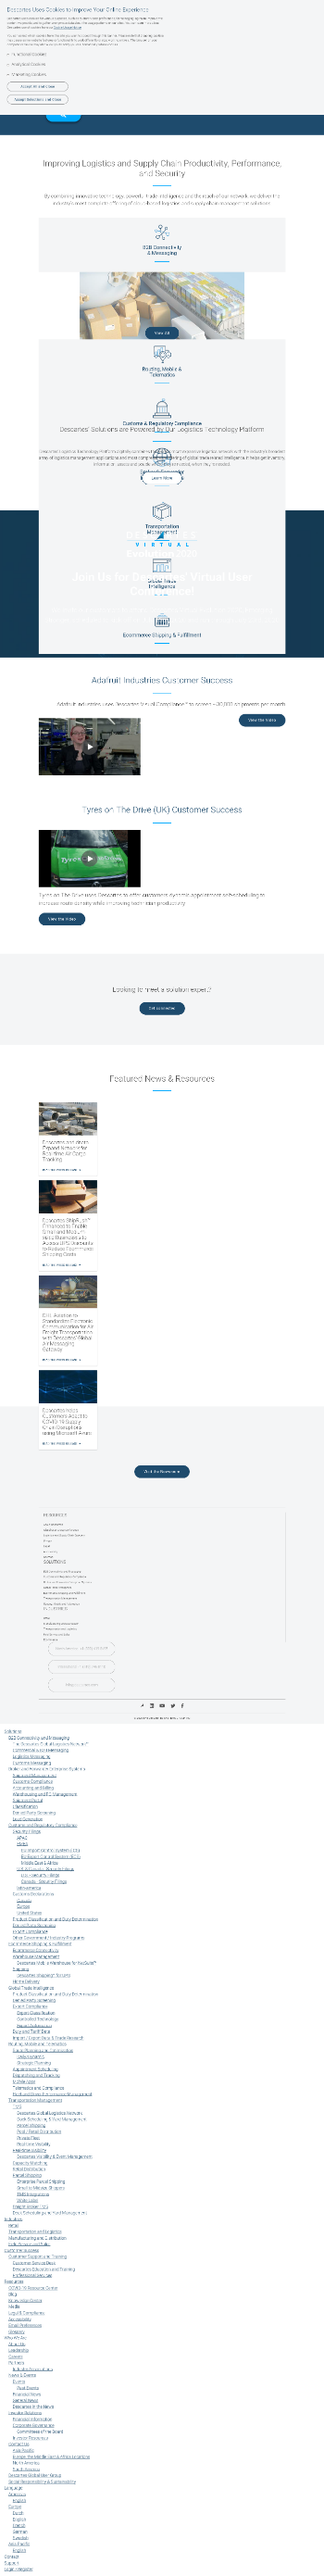 The Descartes Systems Group Inc Website Screenshot